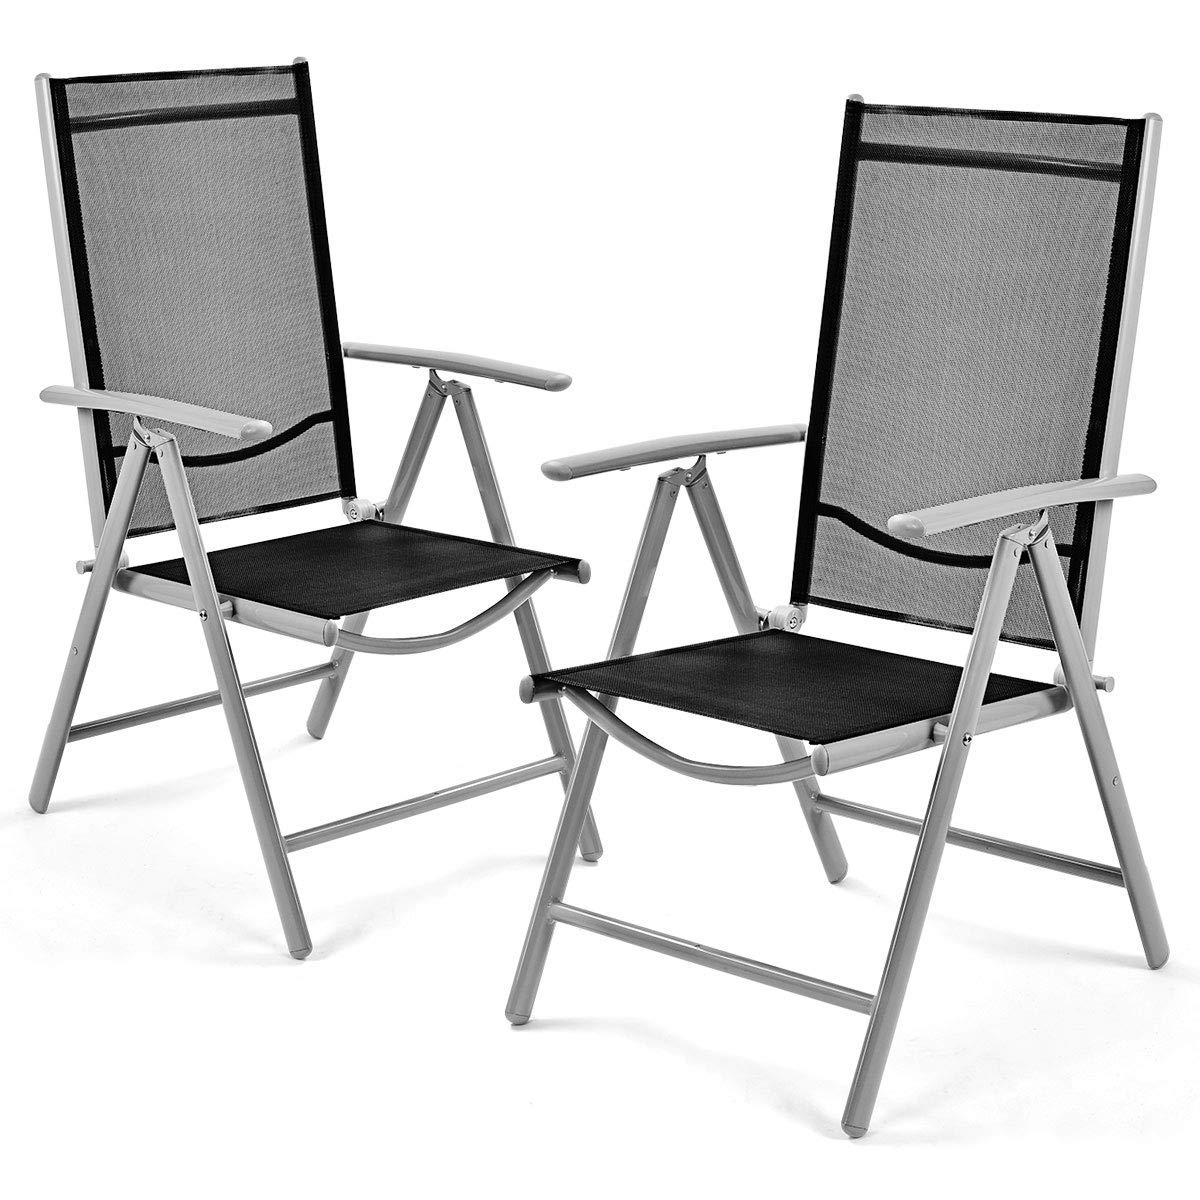 Giantex Set of 2 Patio Folding Chairs Adjustable Reclining Indoor Outdoor Garden Pool by Giantex